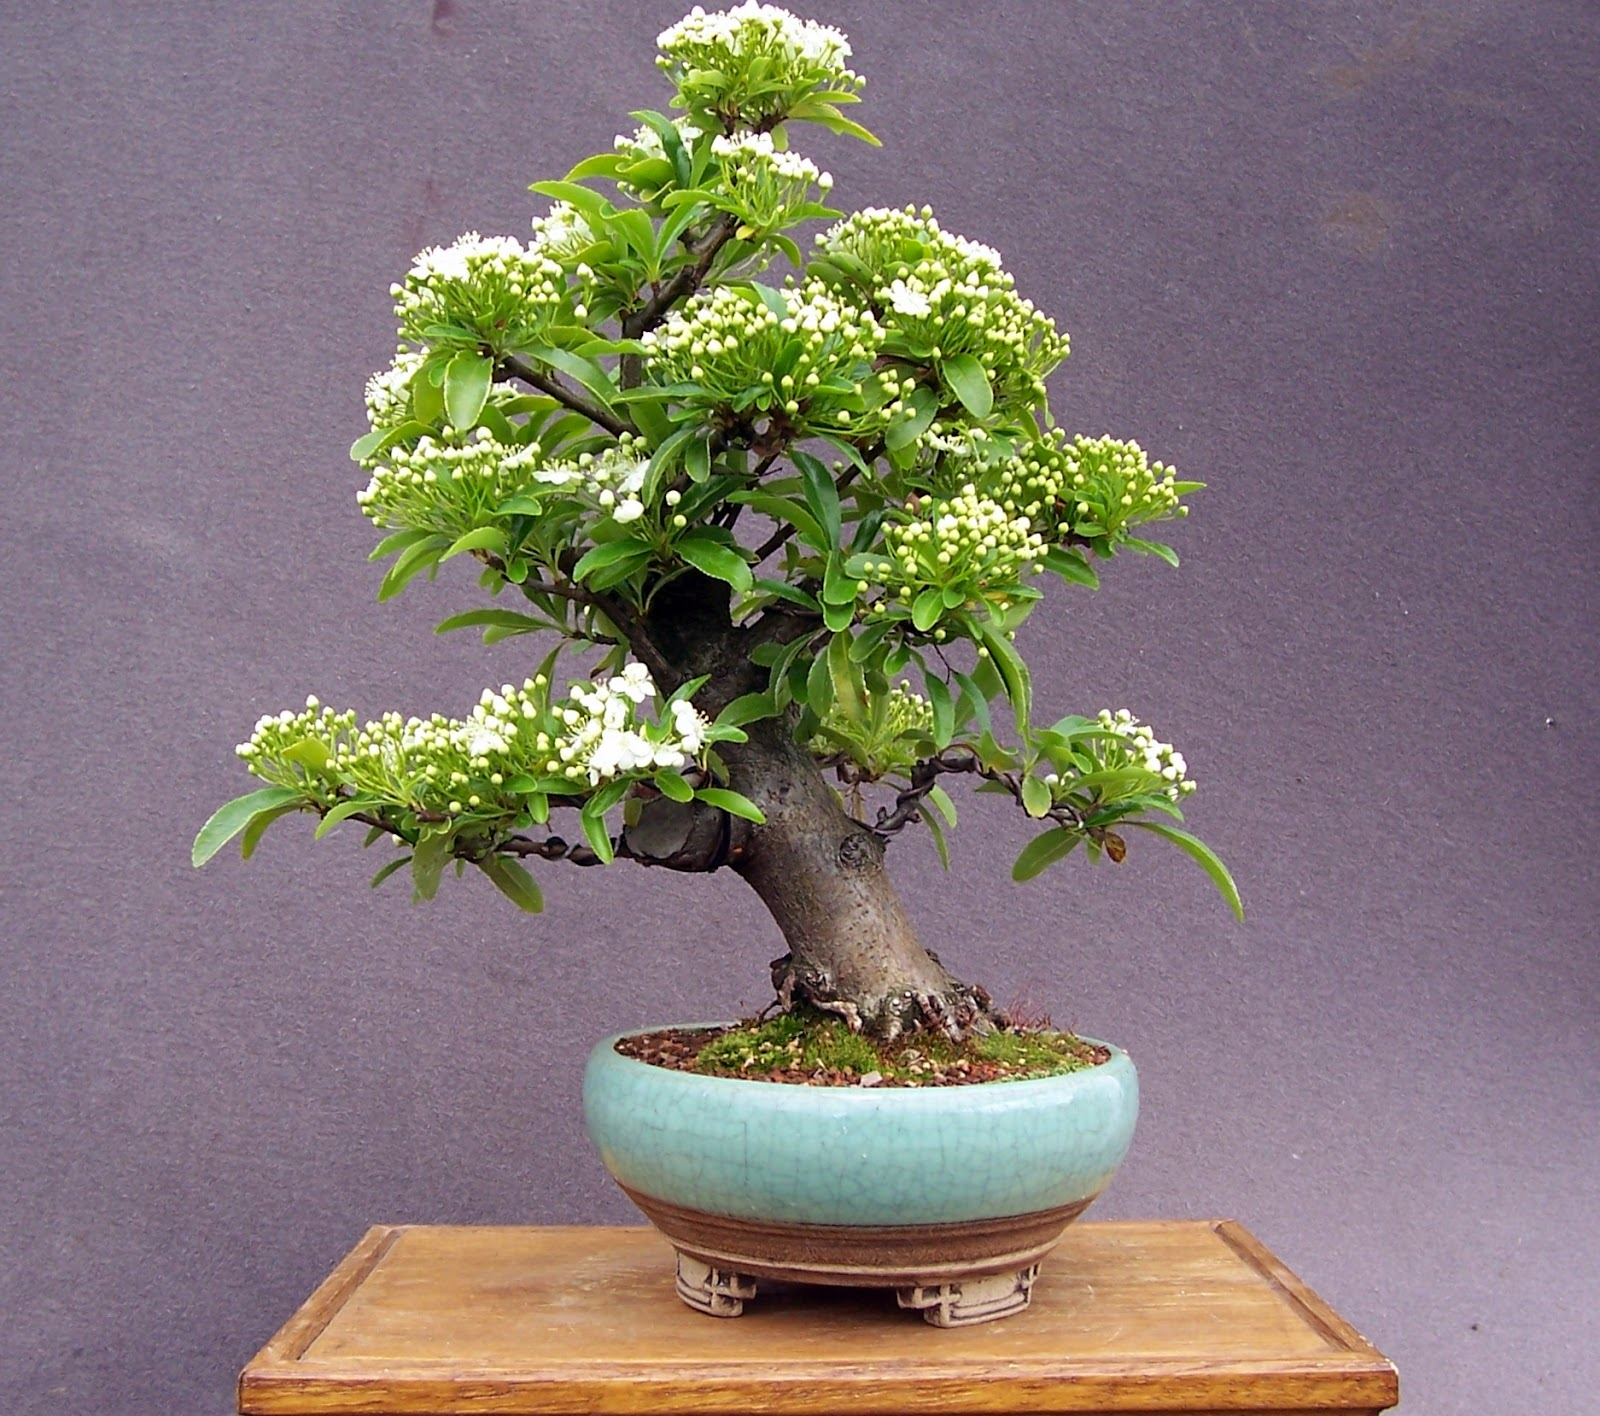 MiKo Bonsai June 2013